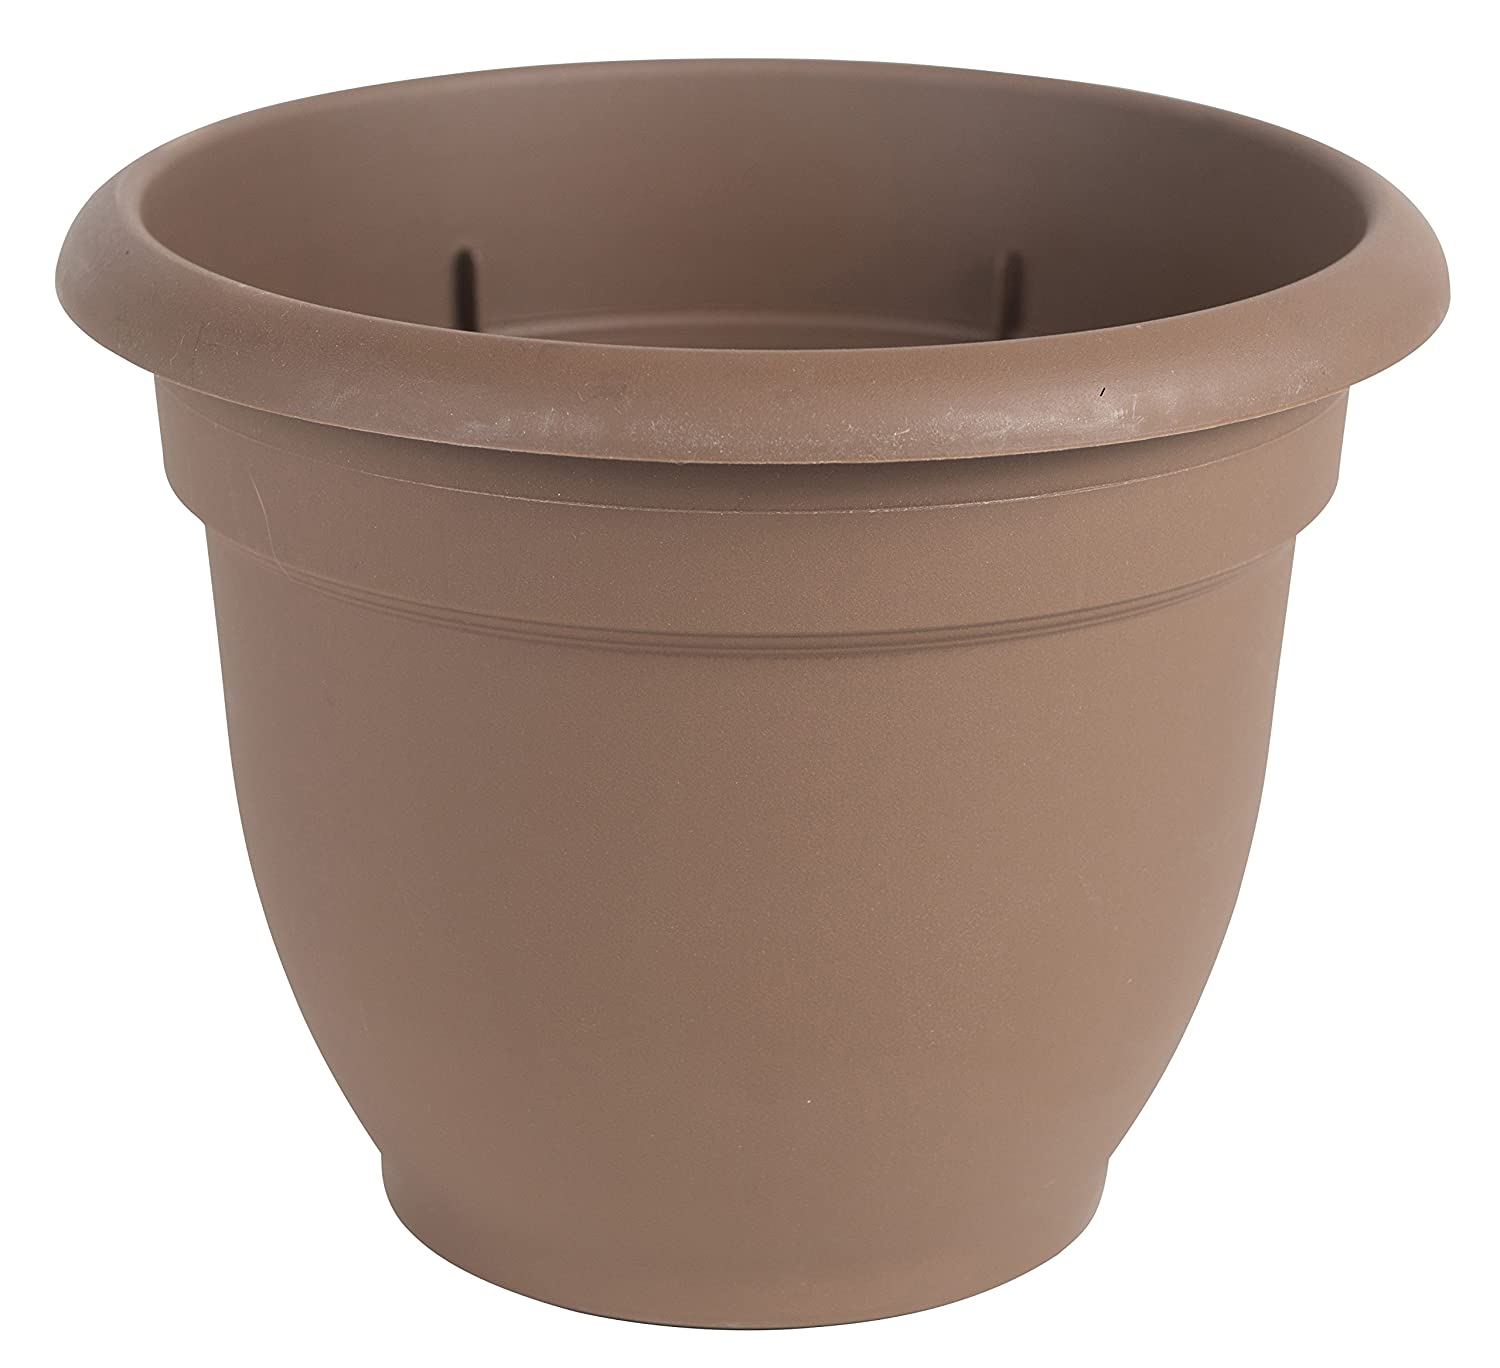 Bloem 20-56306CH Fiskars 6 Inch Ariana Planter with Self-Watering Grid, Chocolate